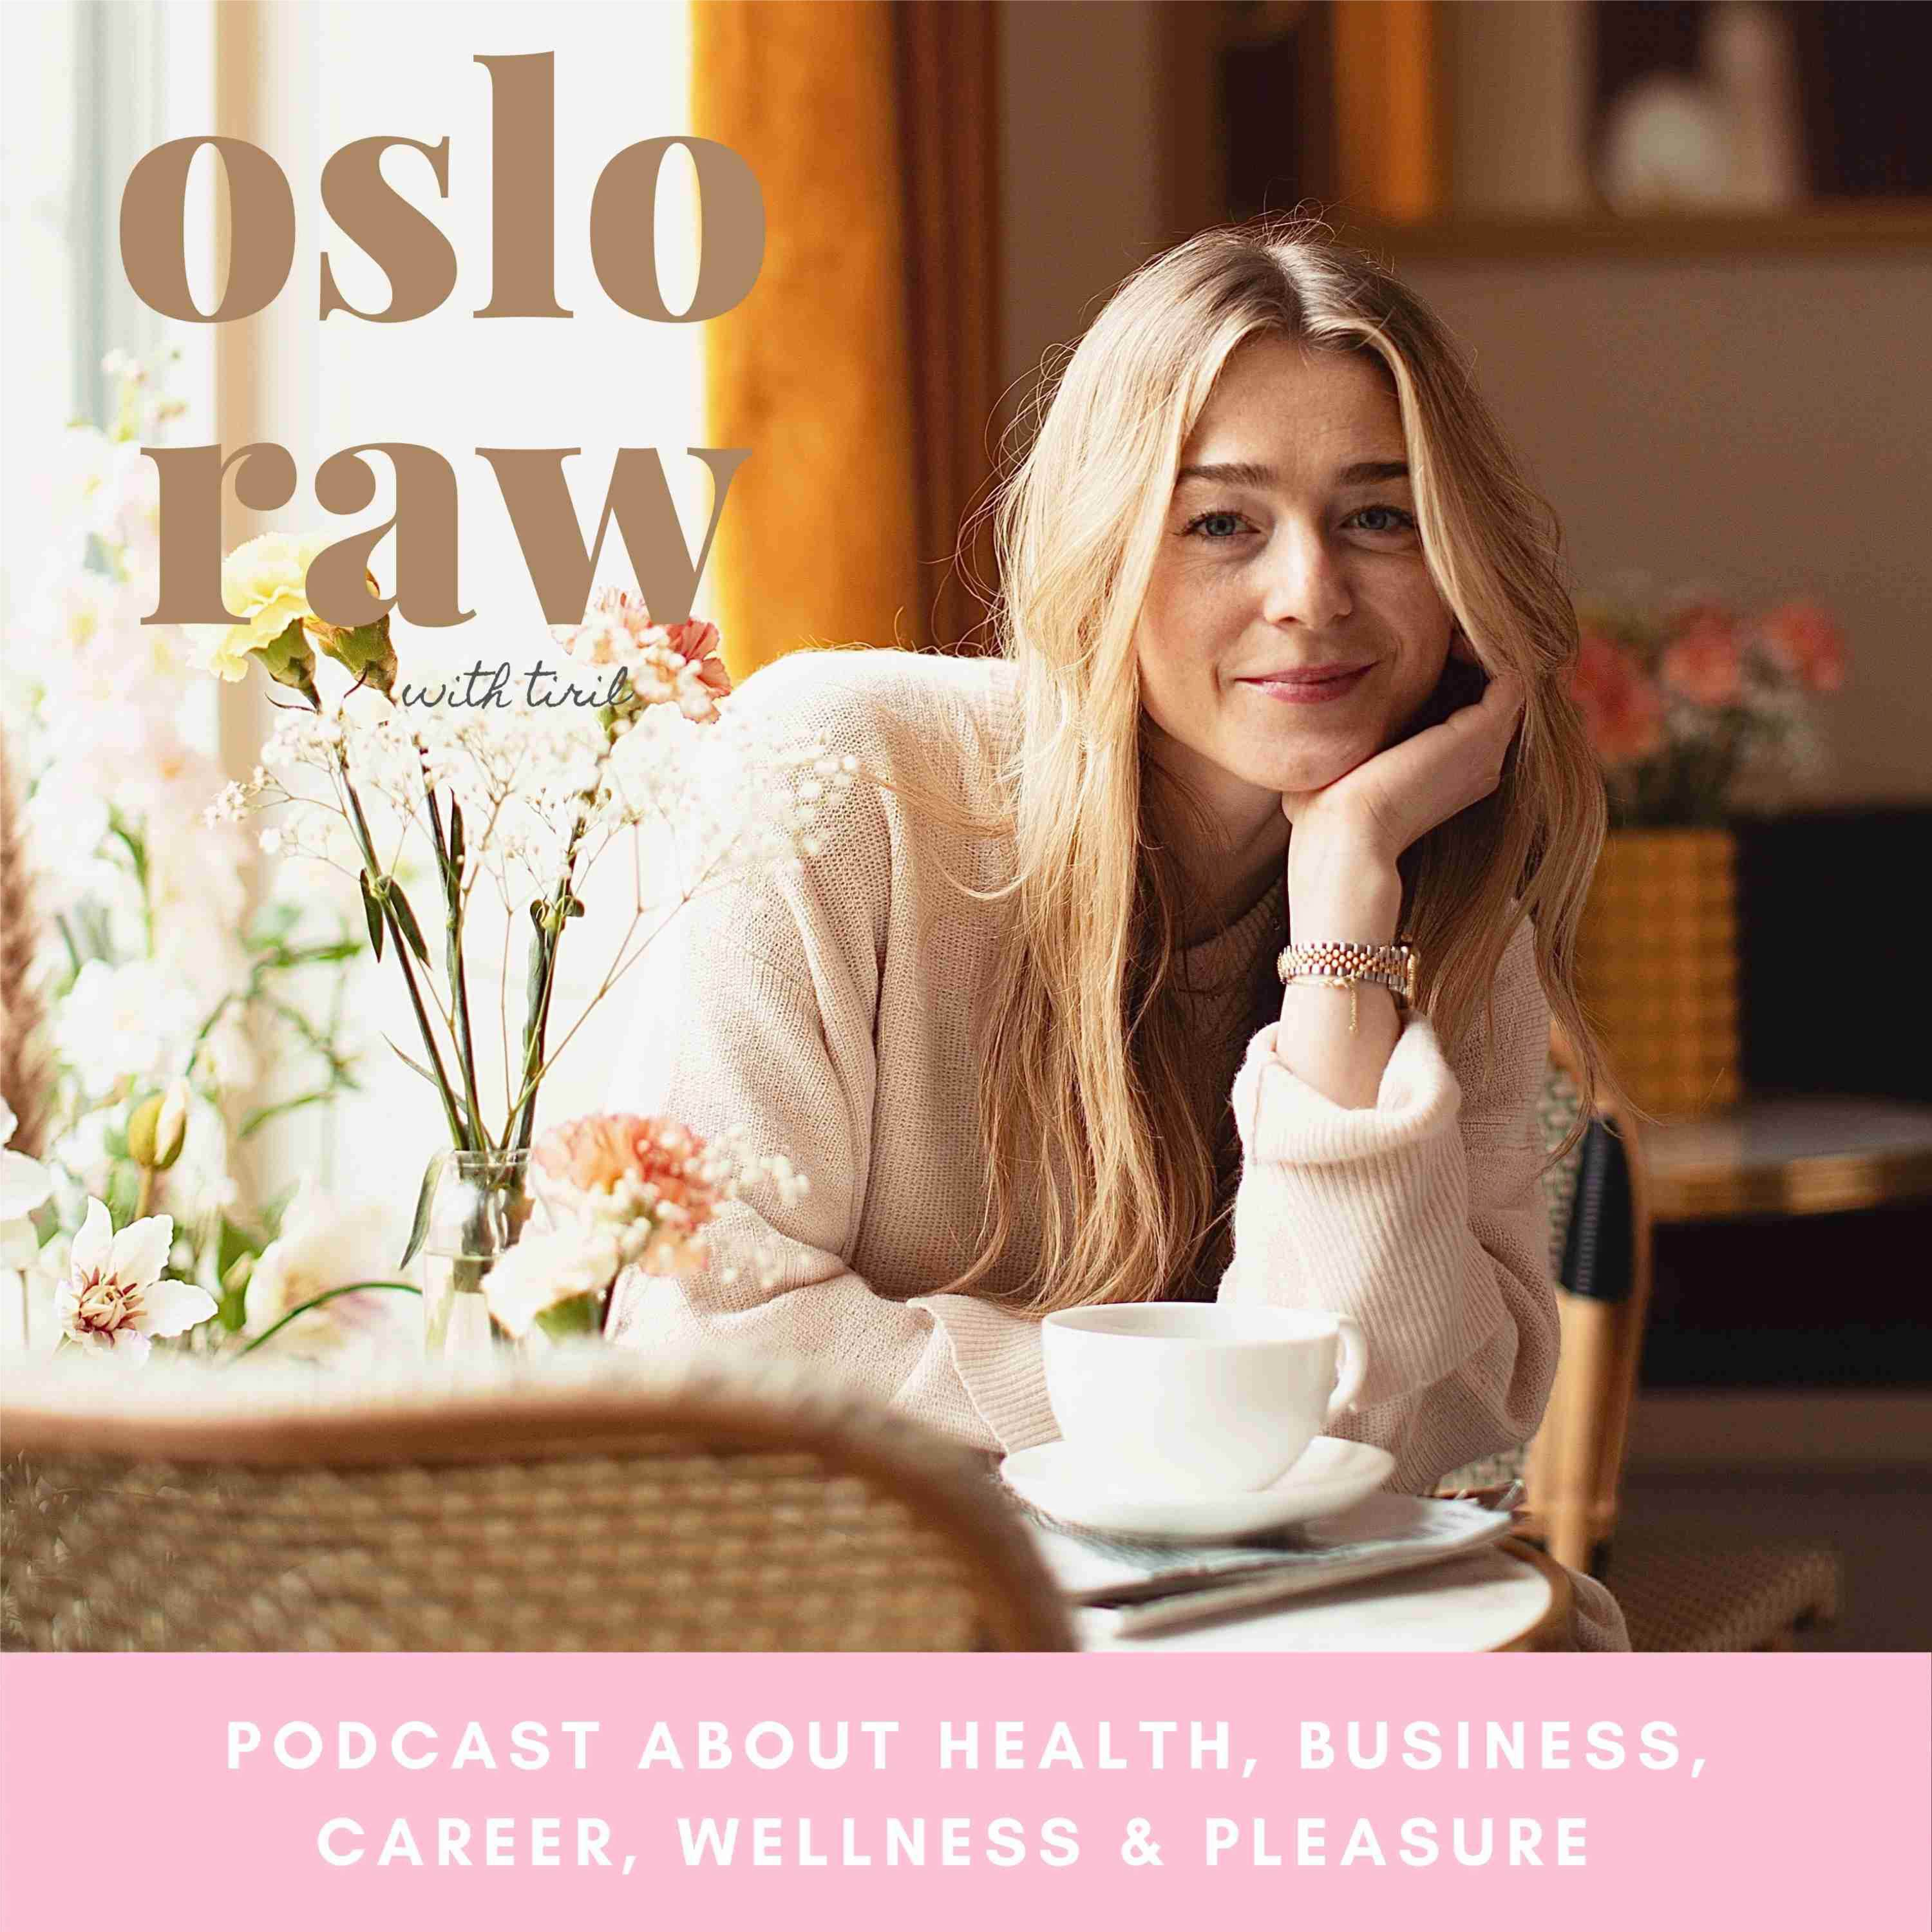 Hygge, health & happiness with Meik Wiking